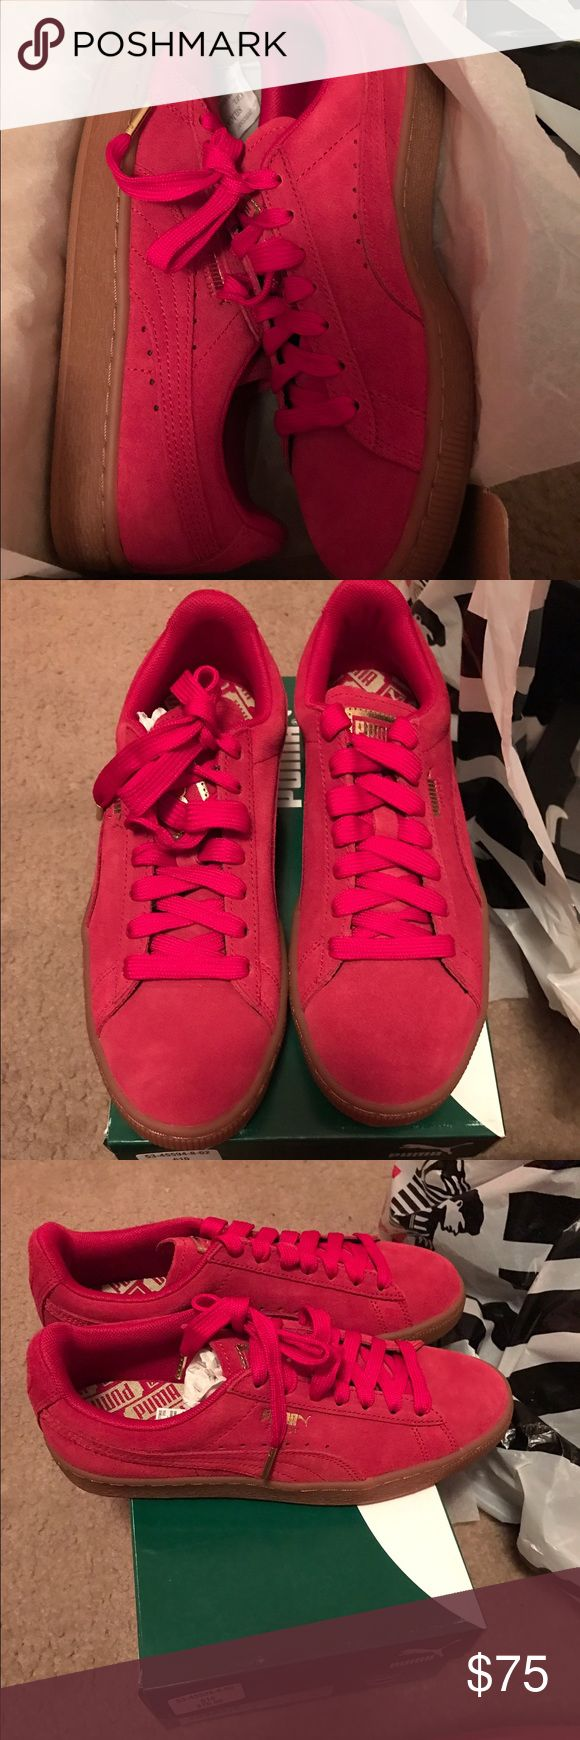 Brand New Red Puma Suede Classic Women Brand New Red Puma Suede Classic Women Size 8.5 Puma Shoes Sneakers